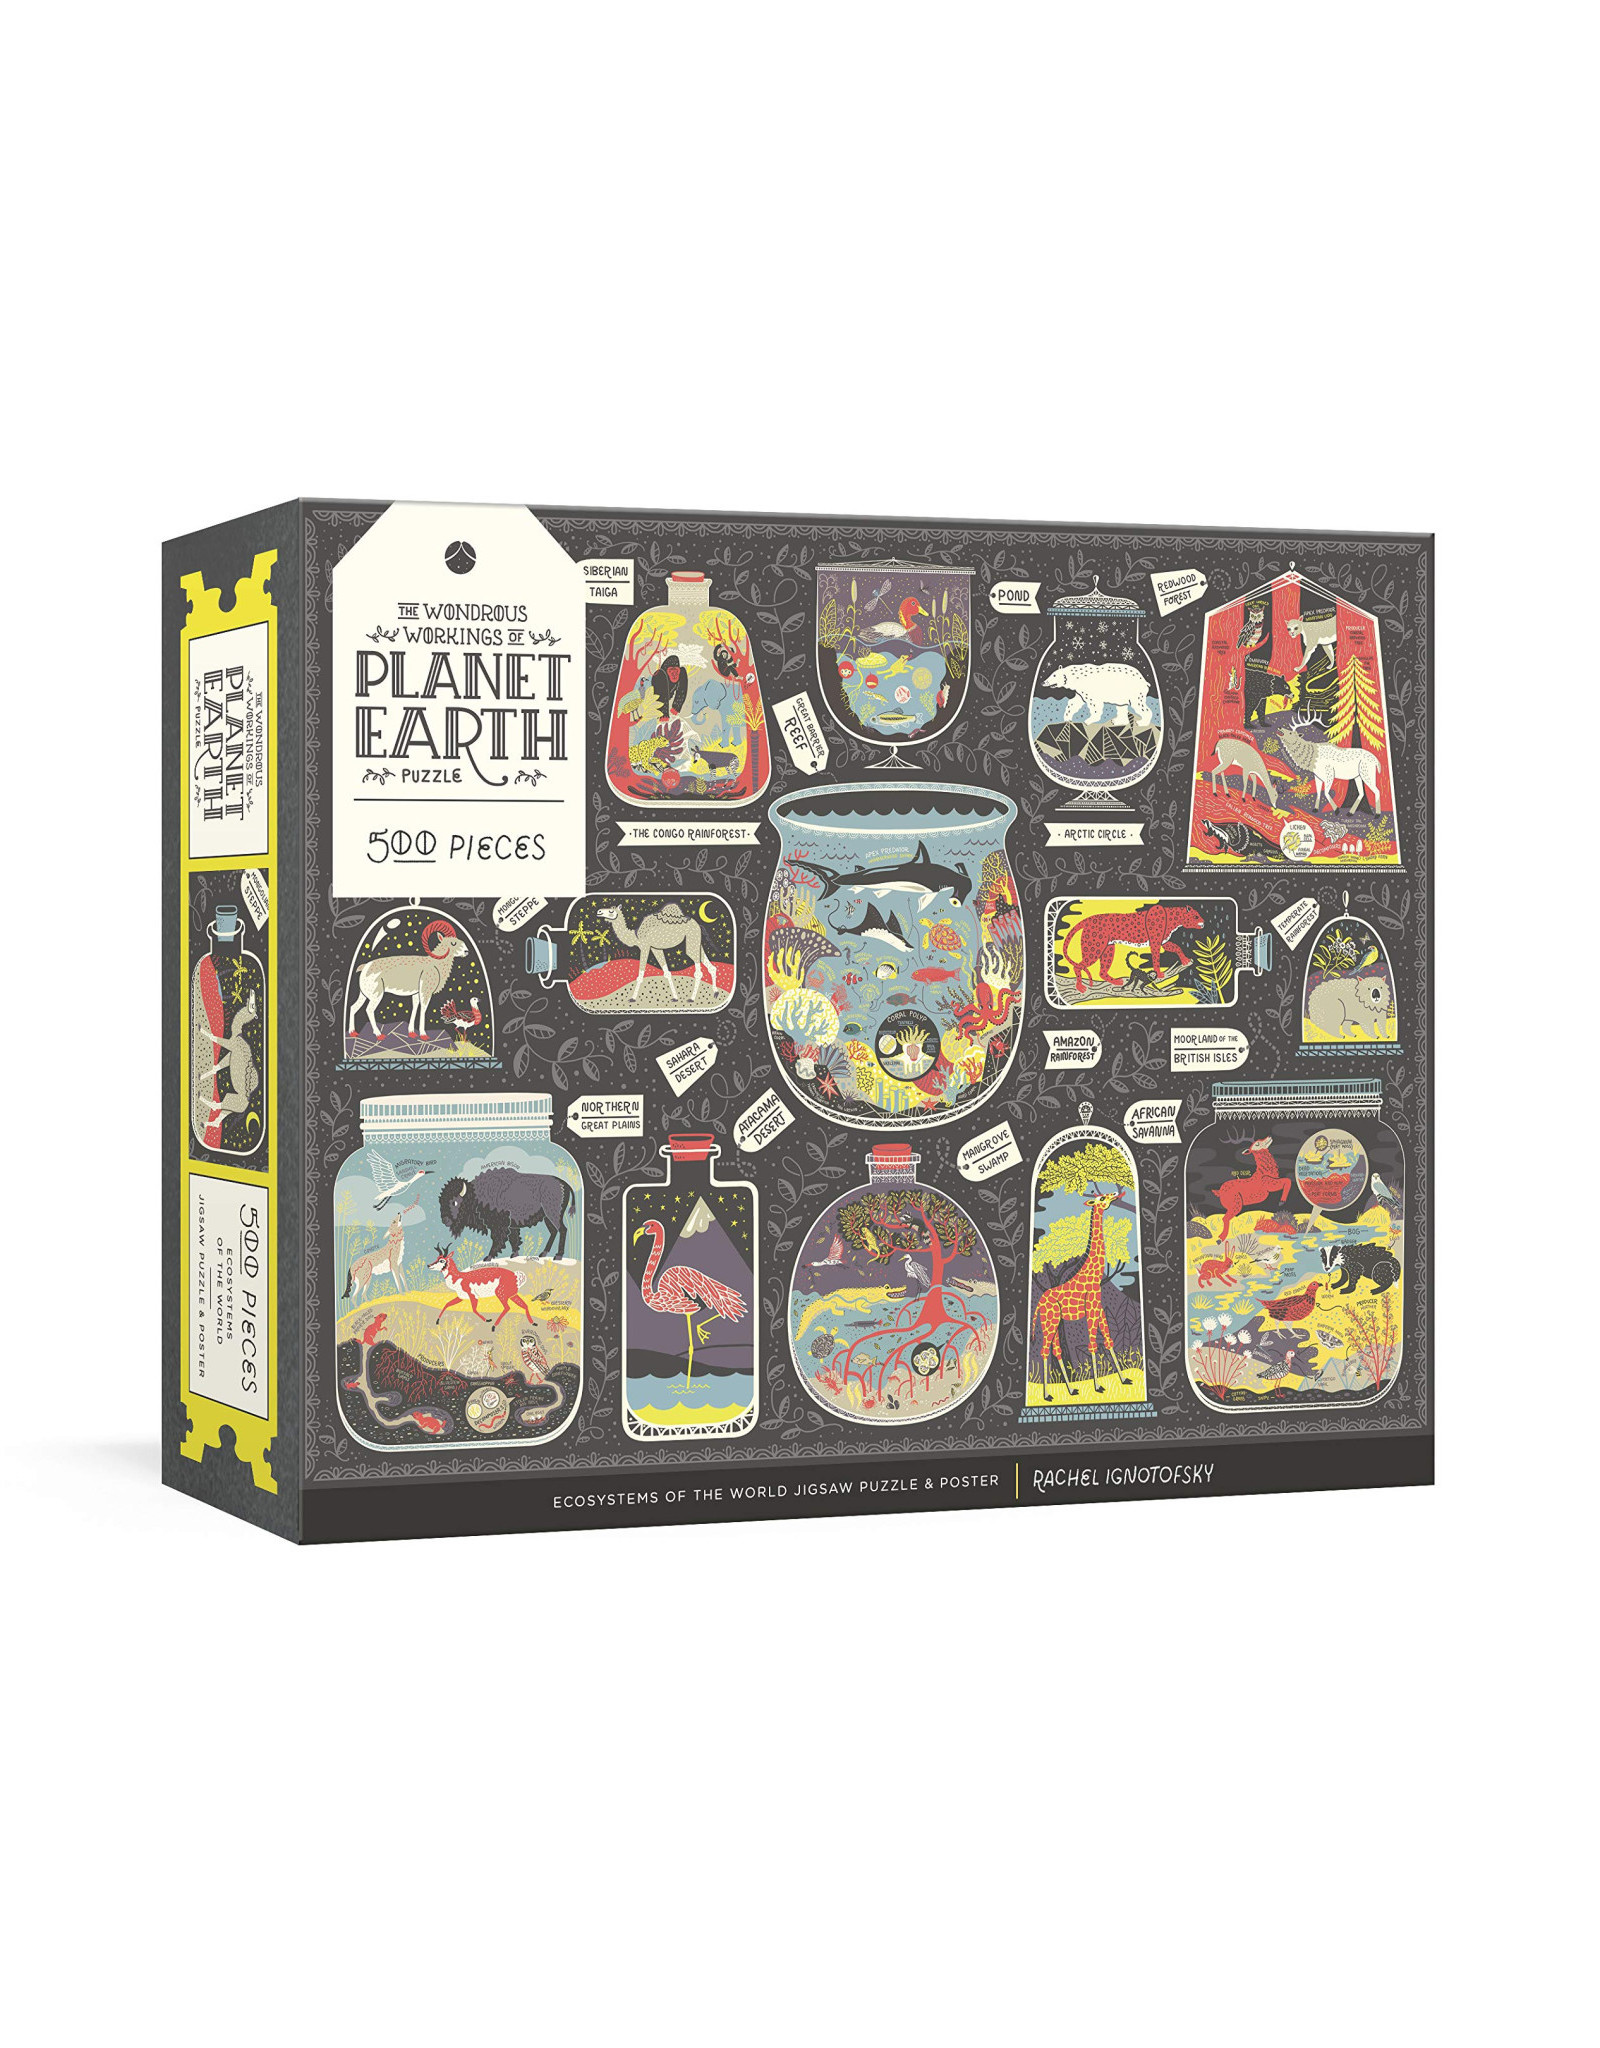 Wondrous Workings of Planet Earth Puzzle